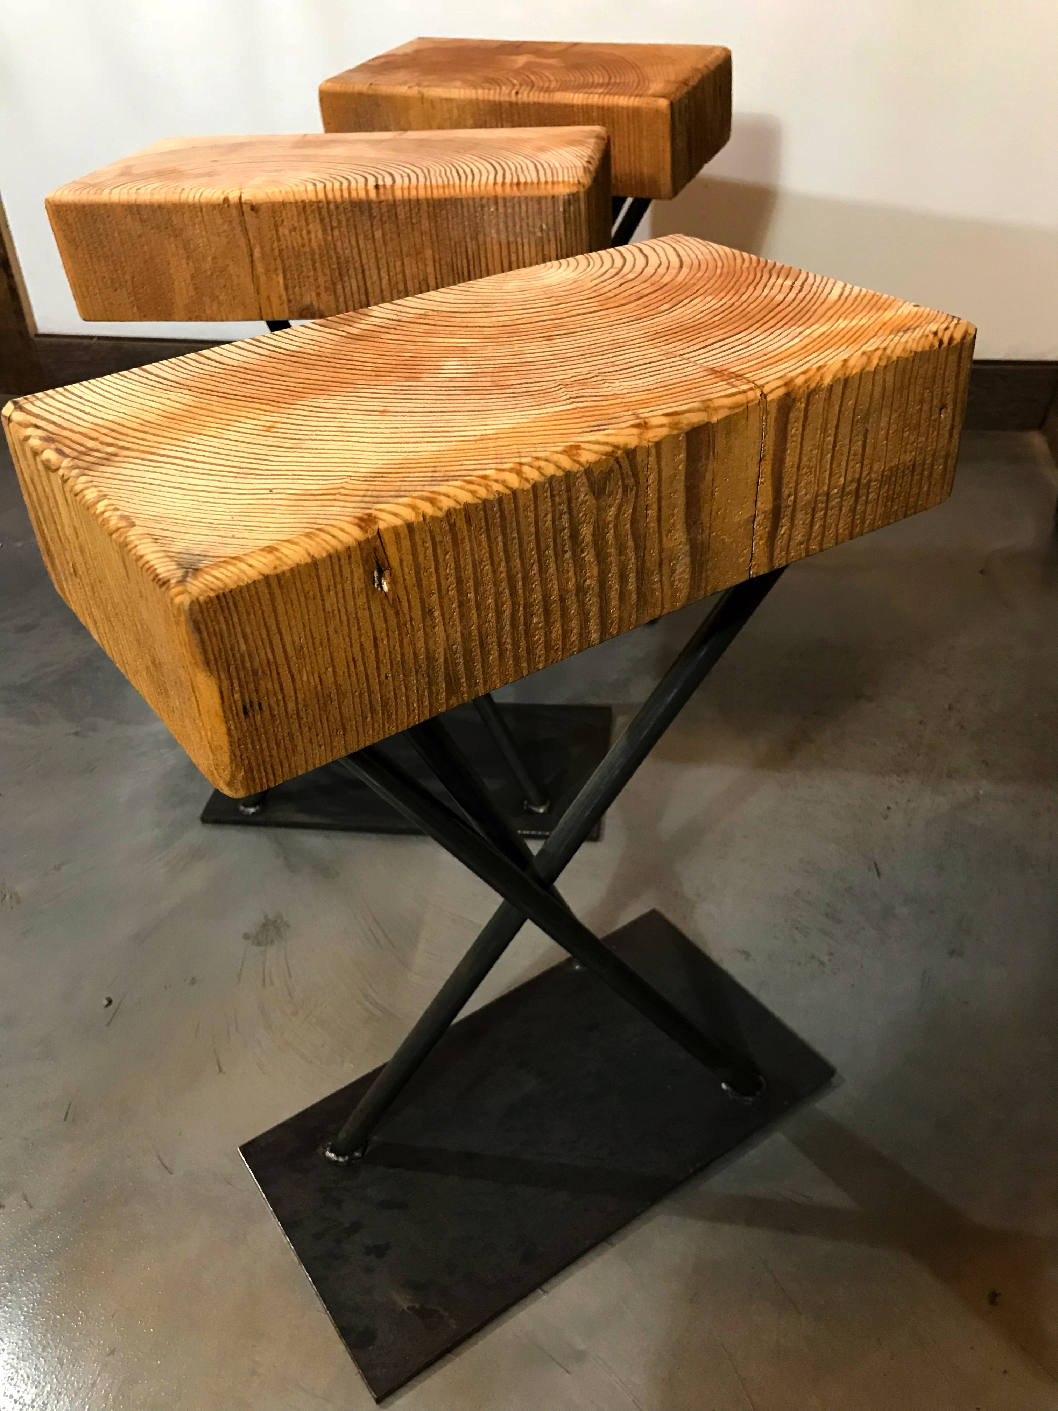 Rustic Steel and Structural Timber Stool